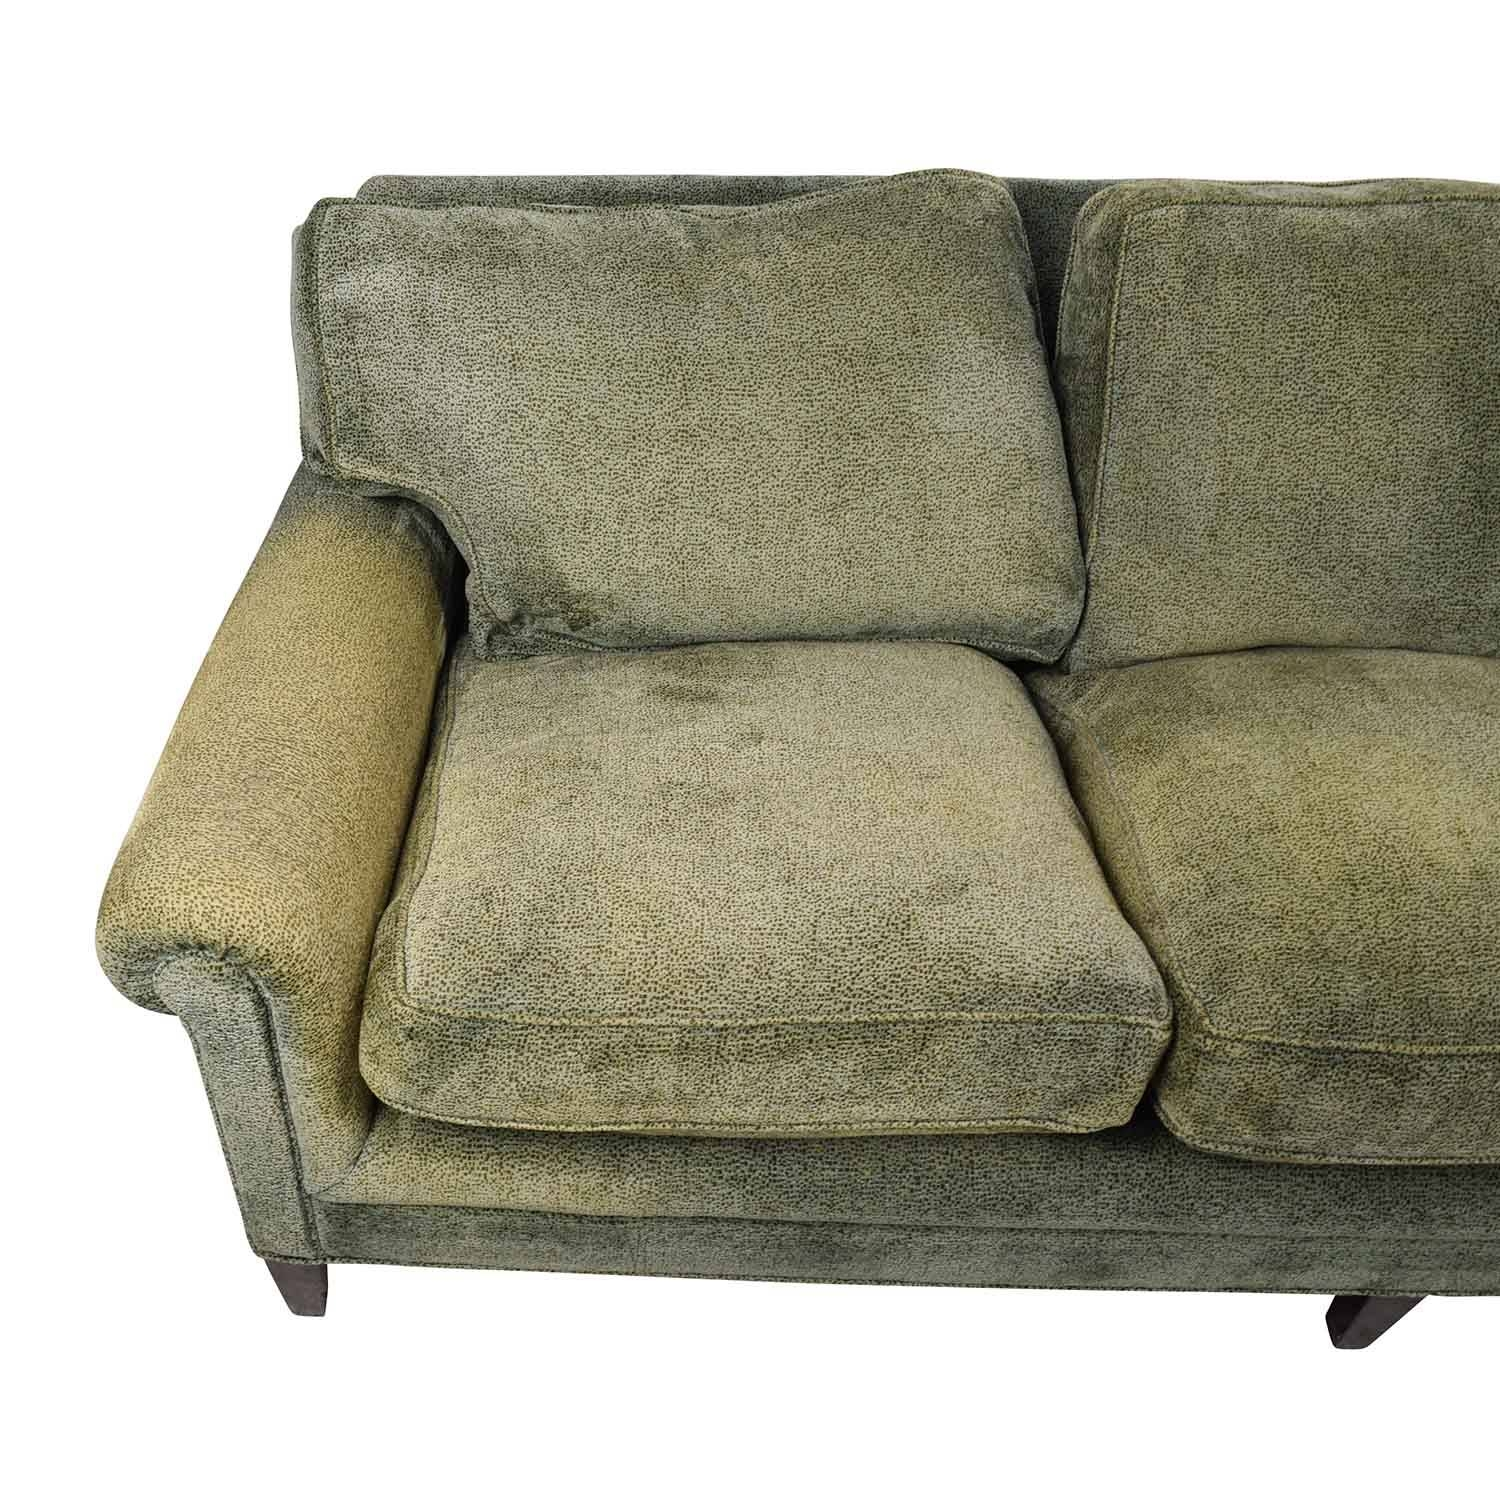 89% Off   George Smith George Smith Classic English Style Sofa / Sofas Inside Classic English Sofas (Photo 9 of 30)